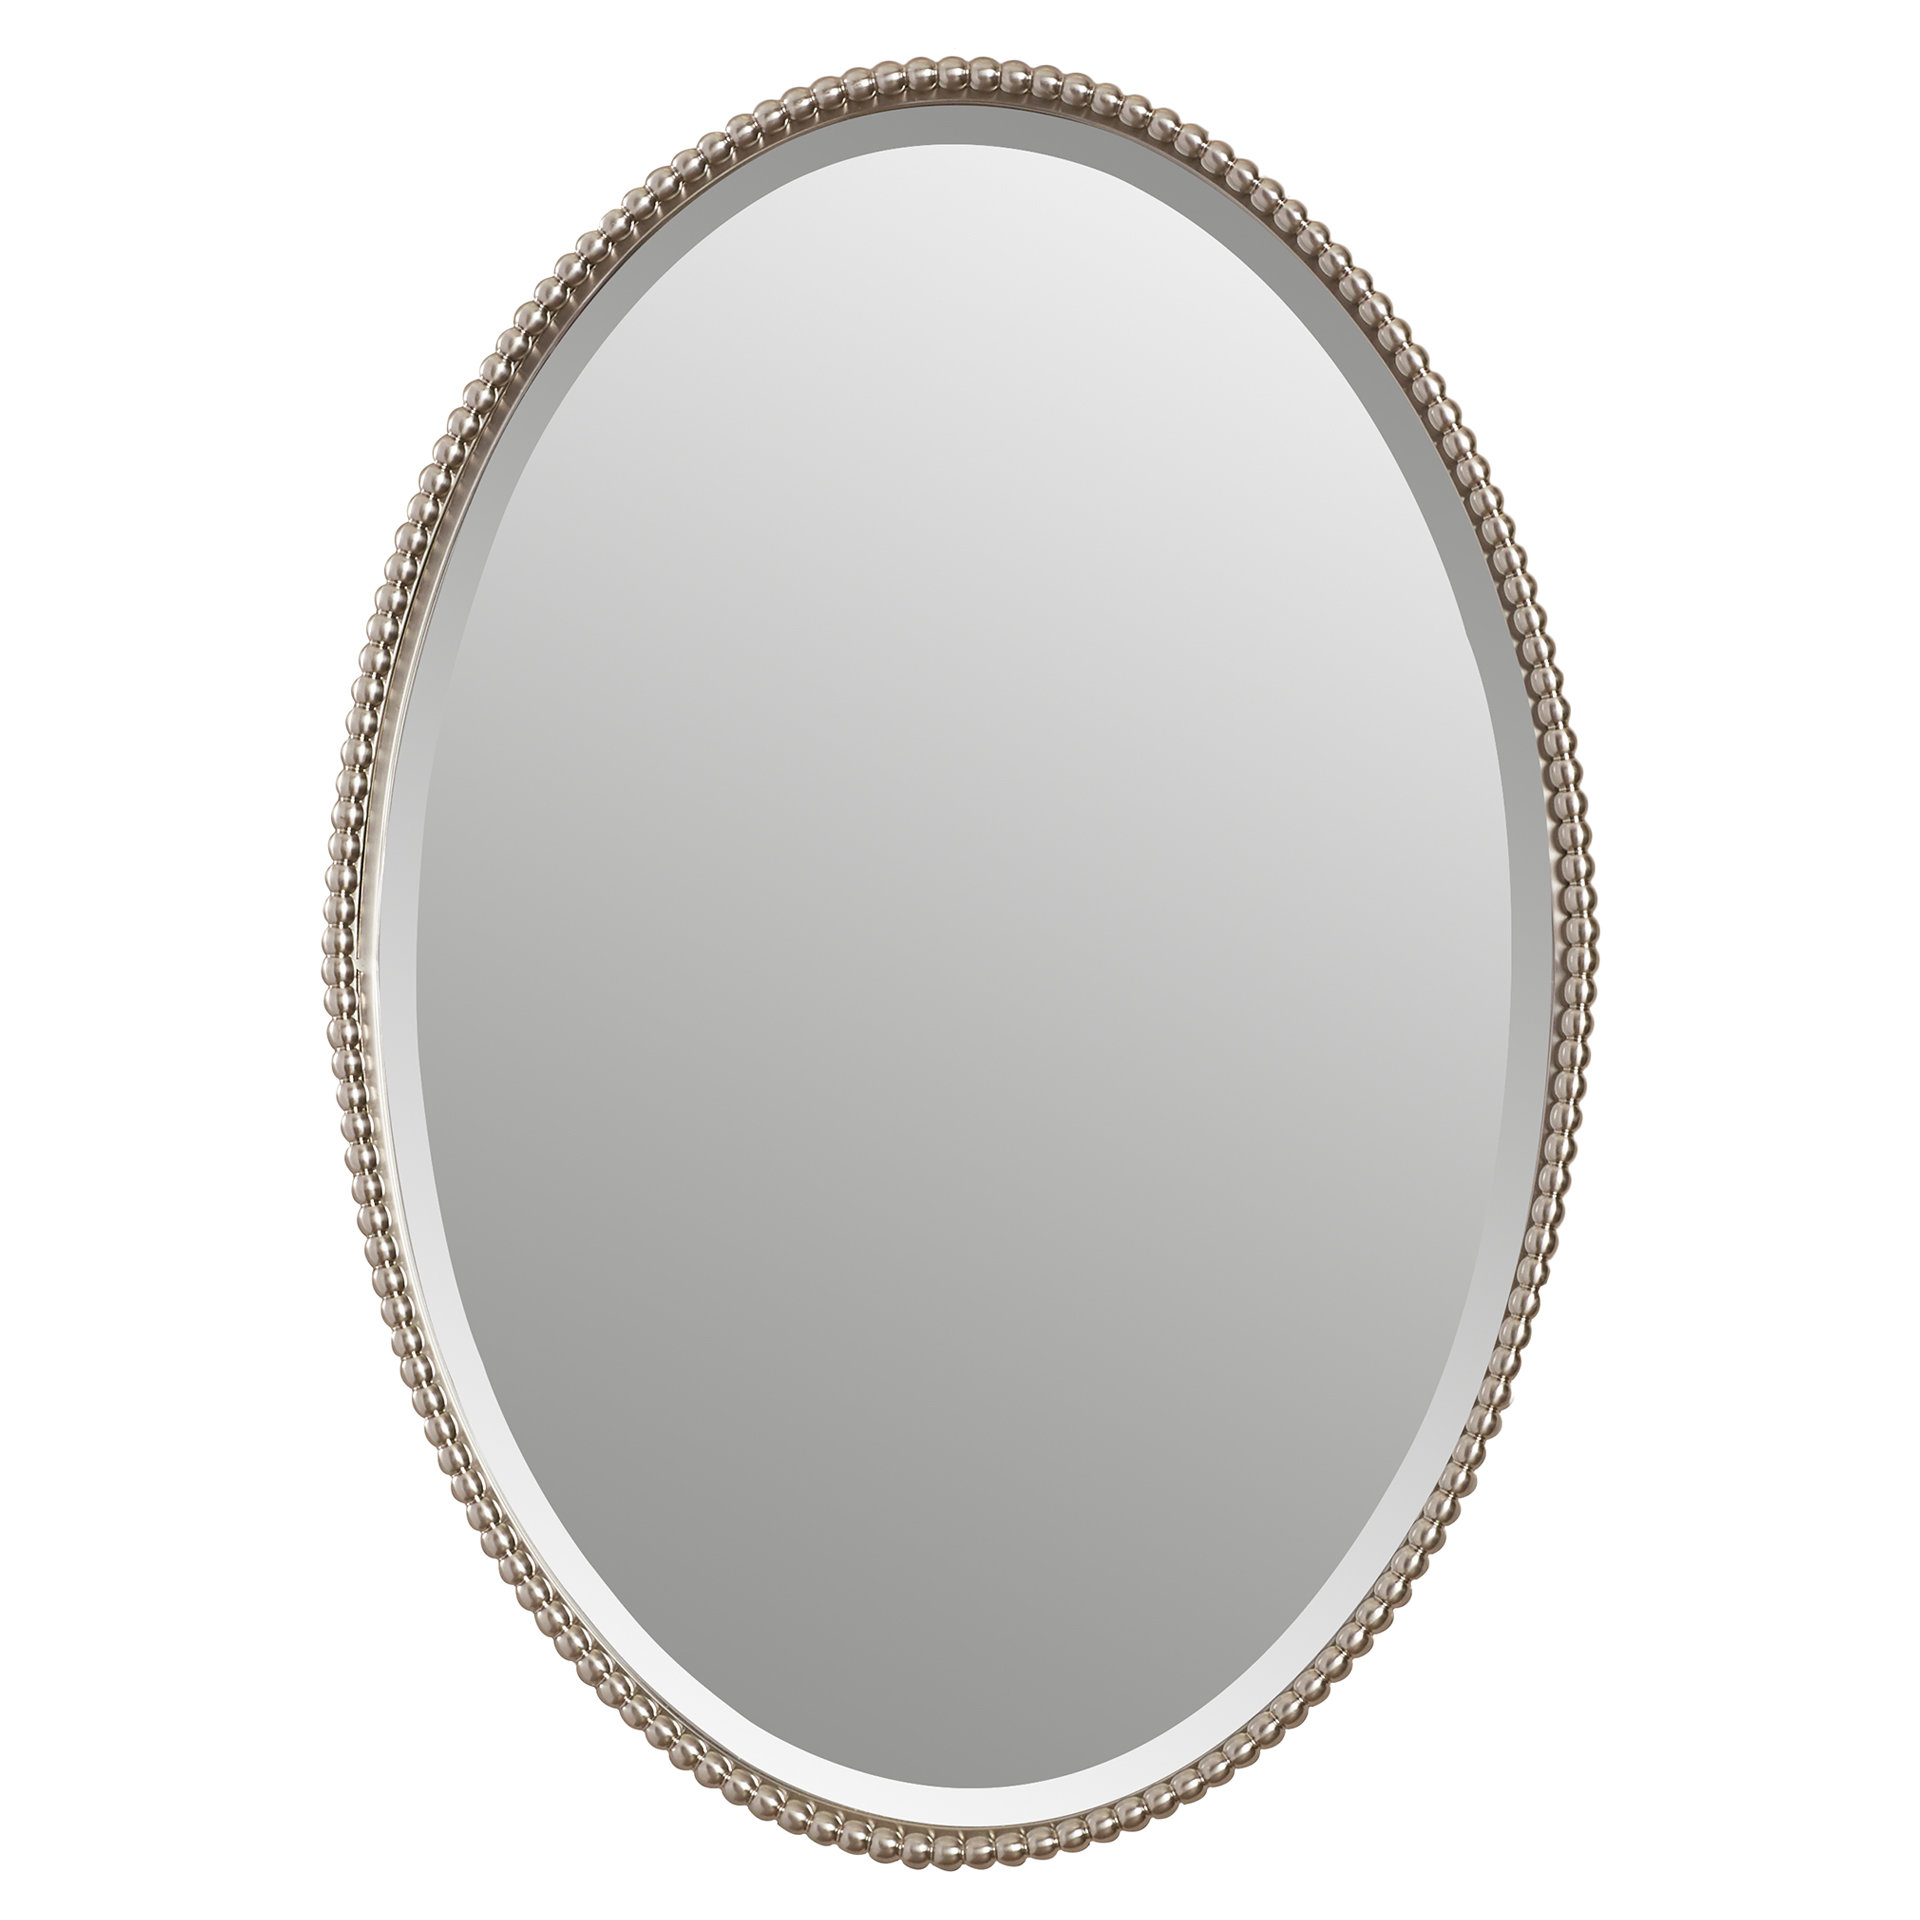 Glen View Beaded Oval Traditional Accent Mirrors Intended For Newest Glen View Beaded Oval Traditional Accent Mirror (View 8 of 20)